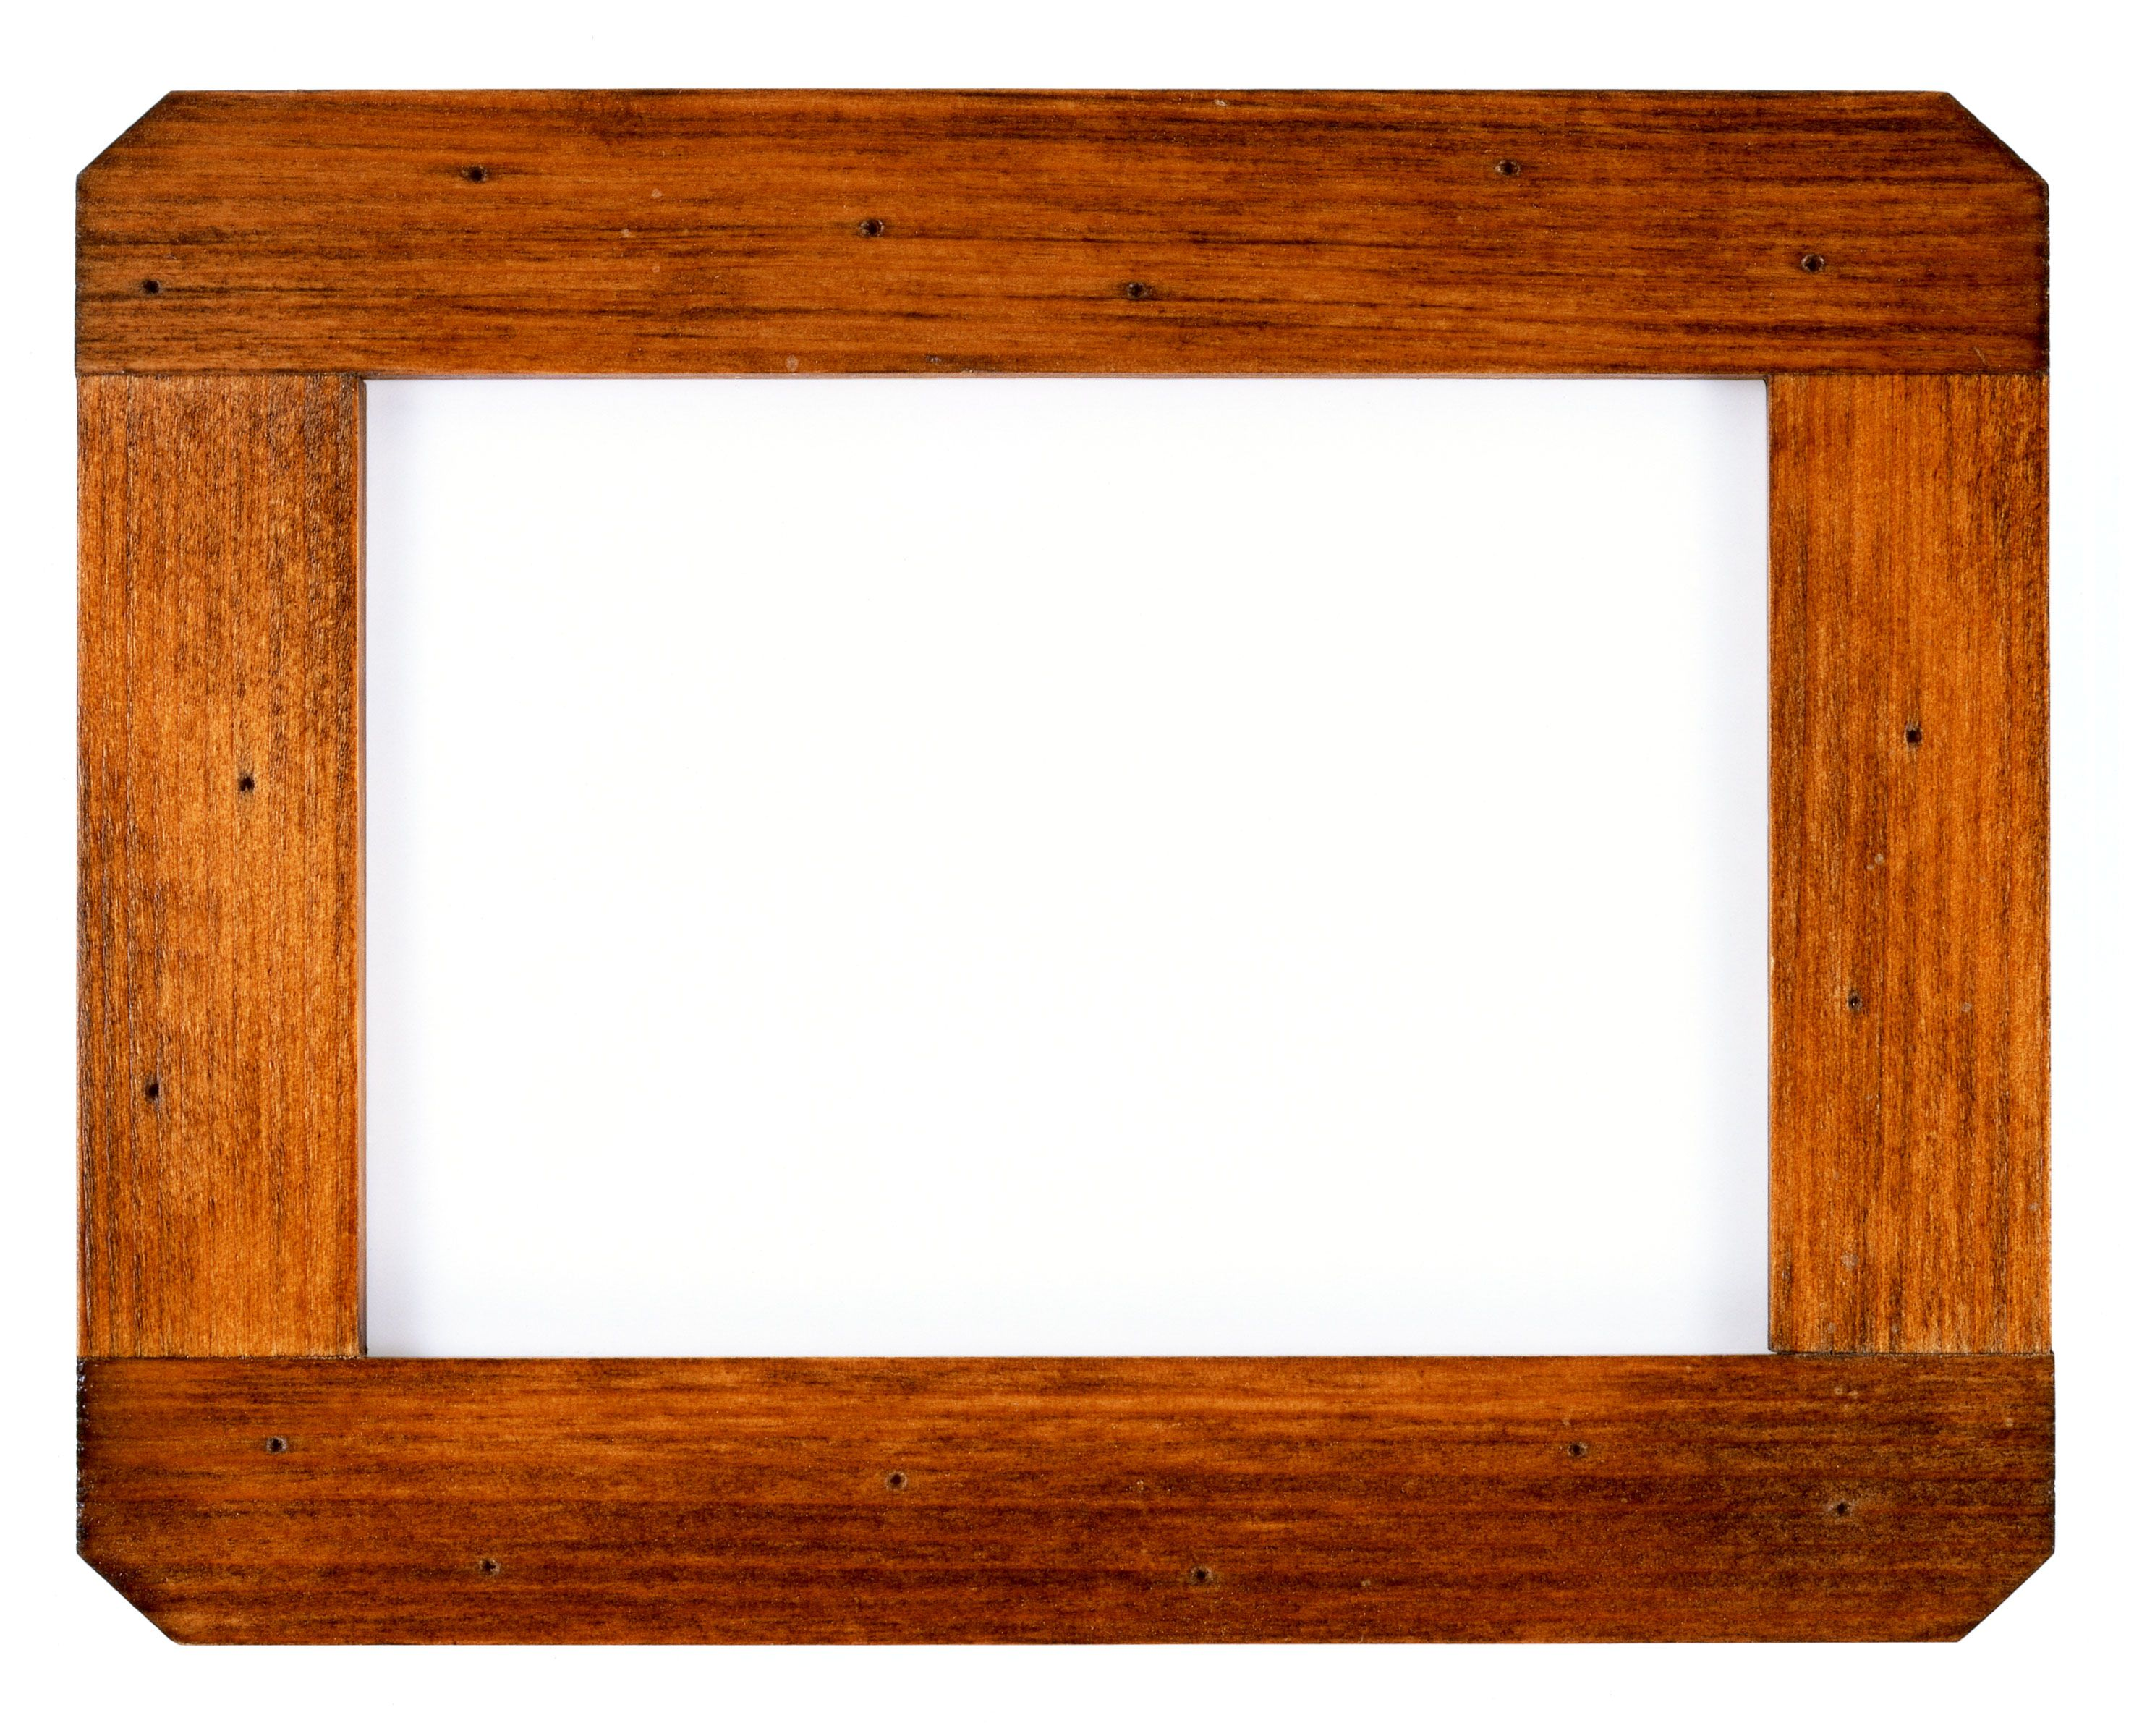 custom rustic wood furniture was viewed in 4 time - Wood Picture Frames